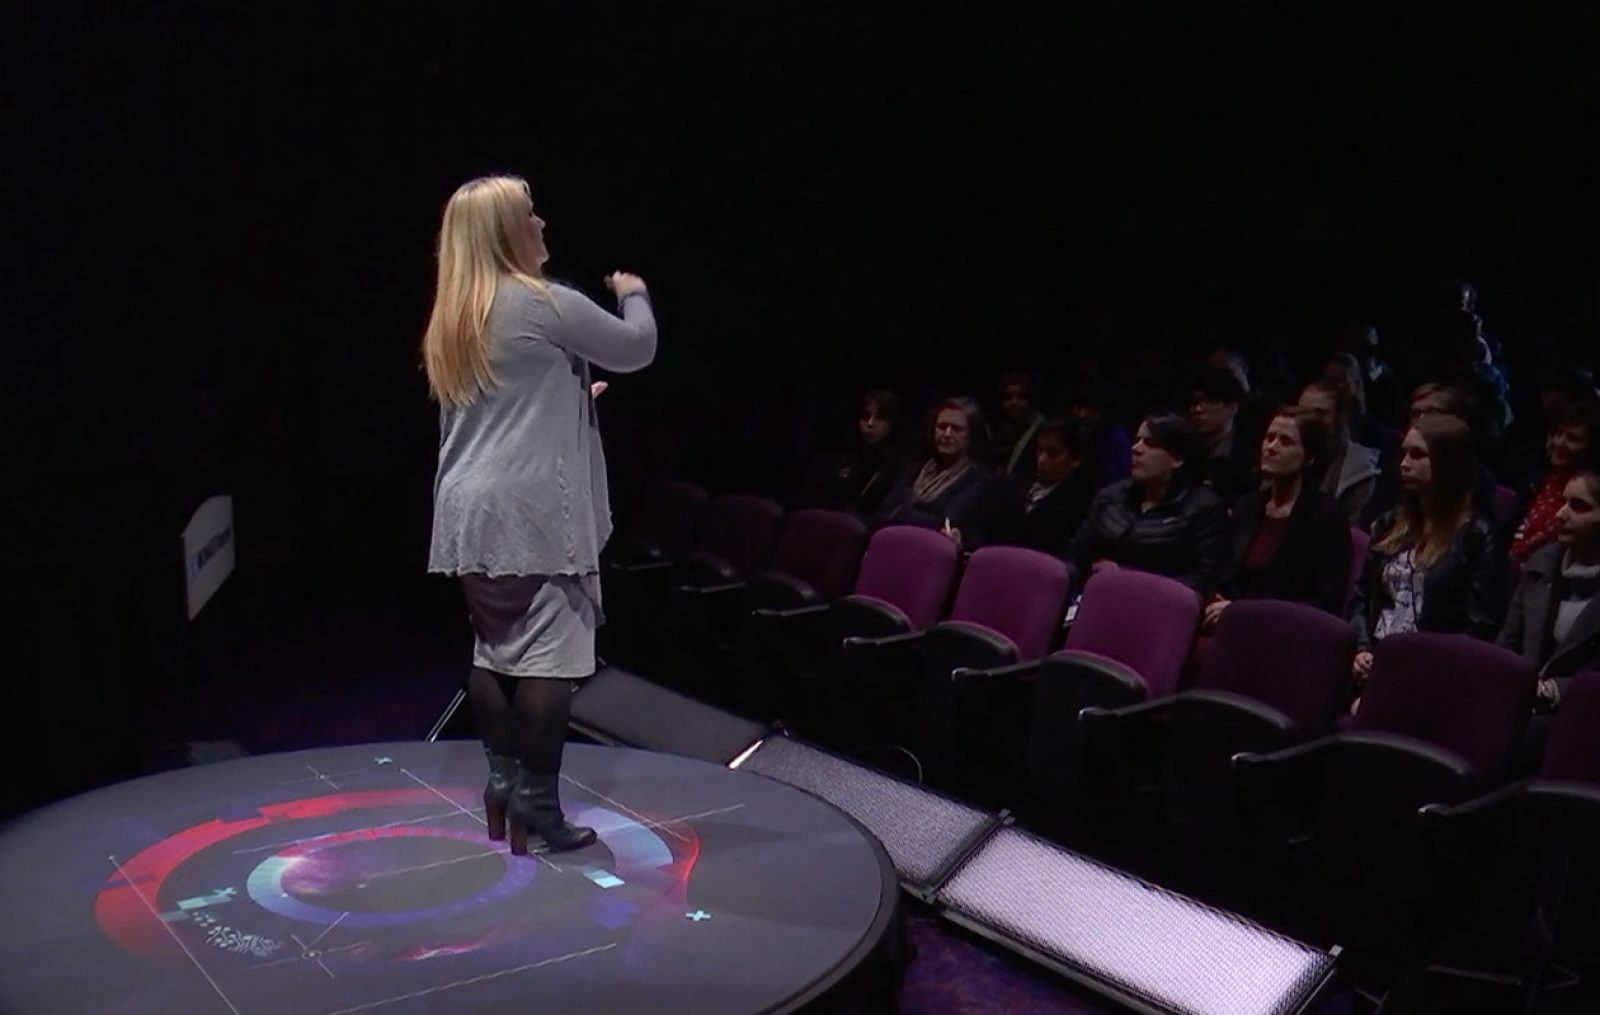 A female speaker at the Monash STEM Talks standing on a stage with a branded floor graphic